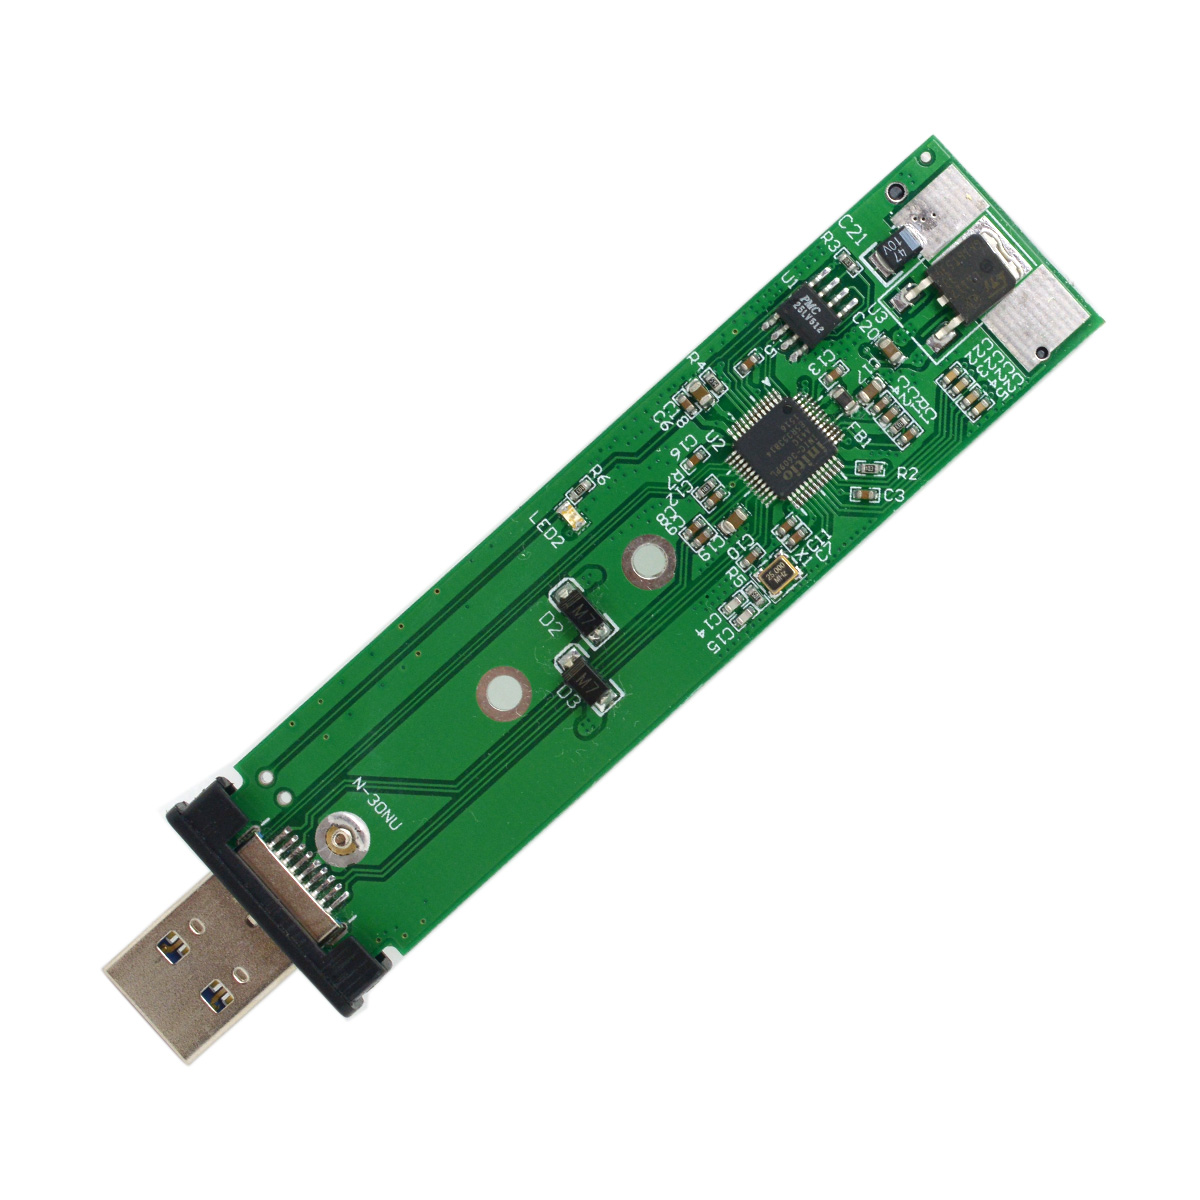 10pcs/lot CY 80mm NGFF M2 SSD to USB 3.0 External PCBA Conveter Adapter Card Flash Disk Type with Black Case